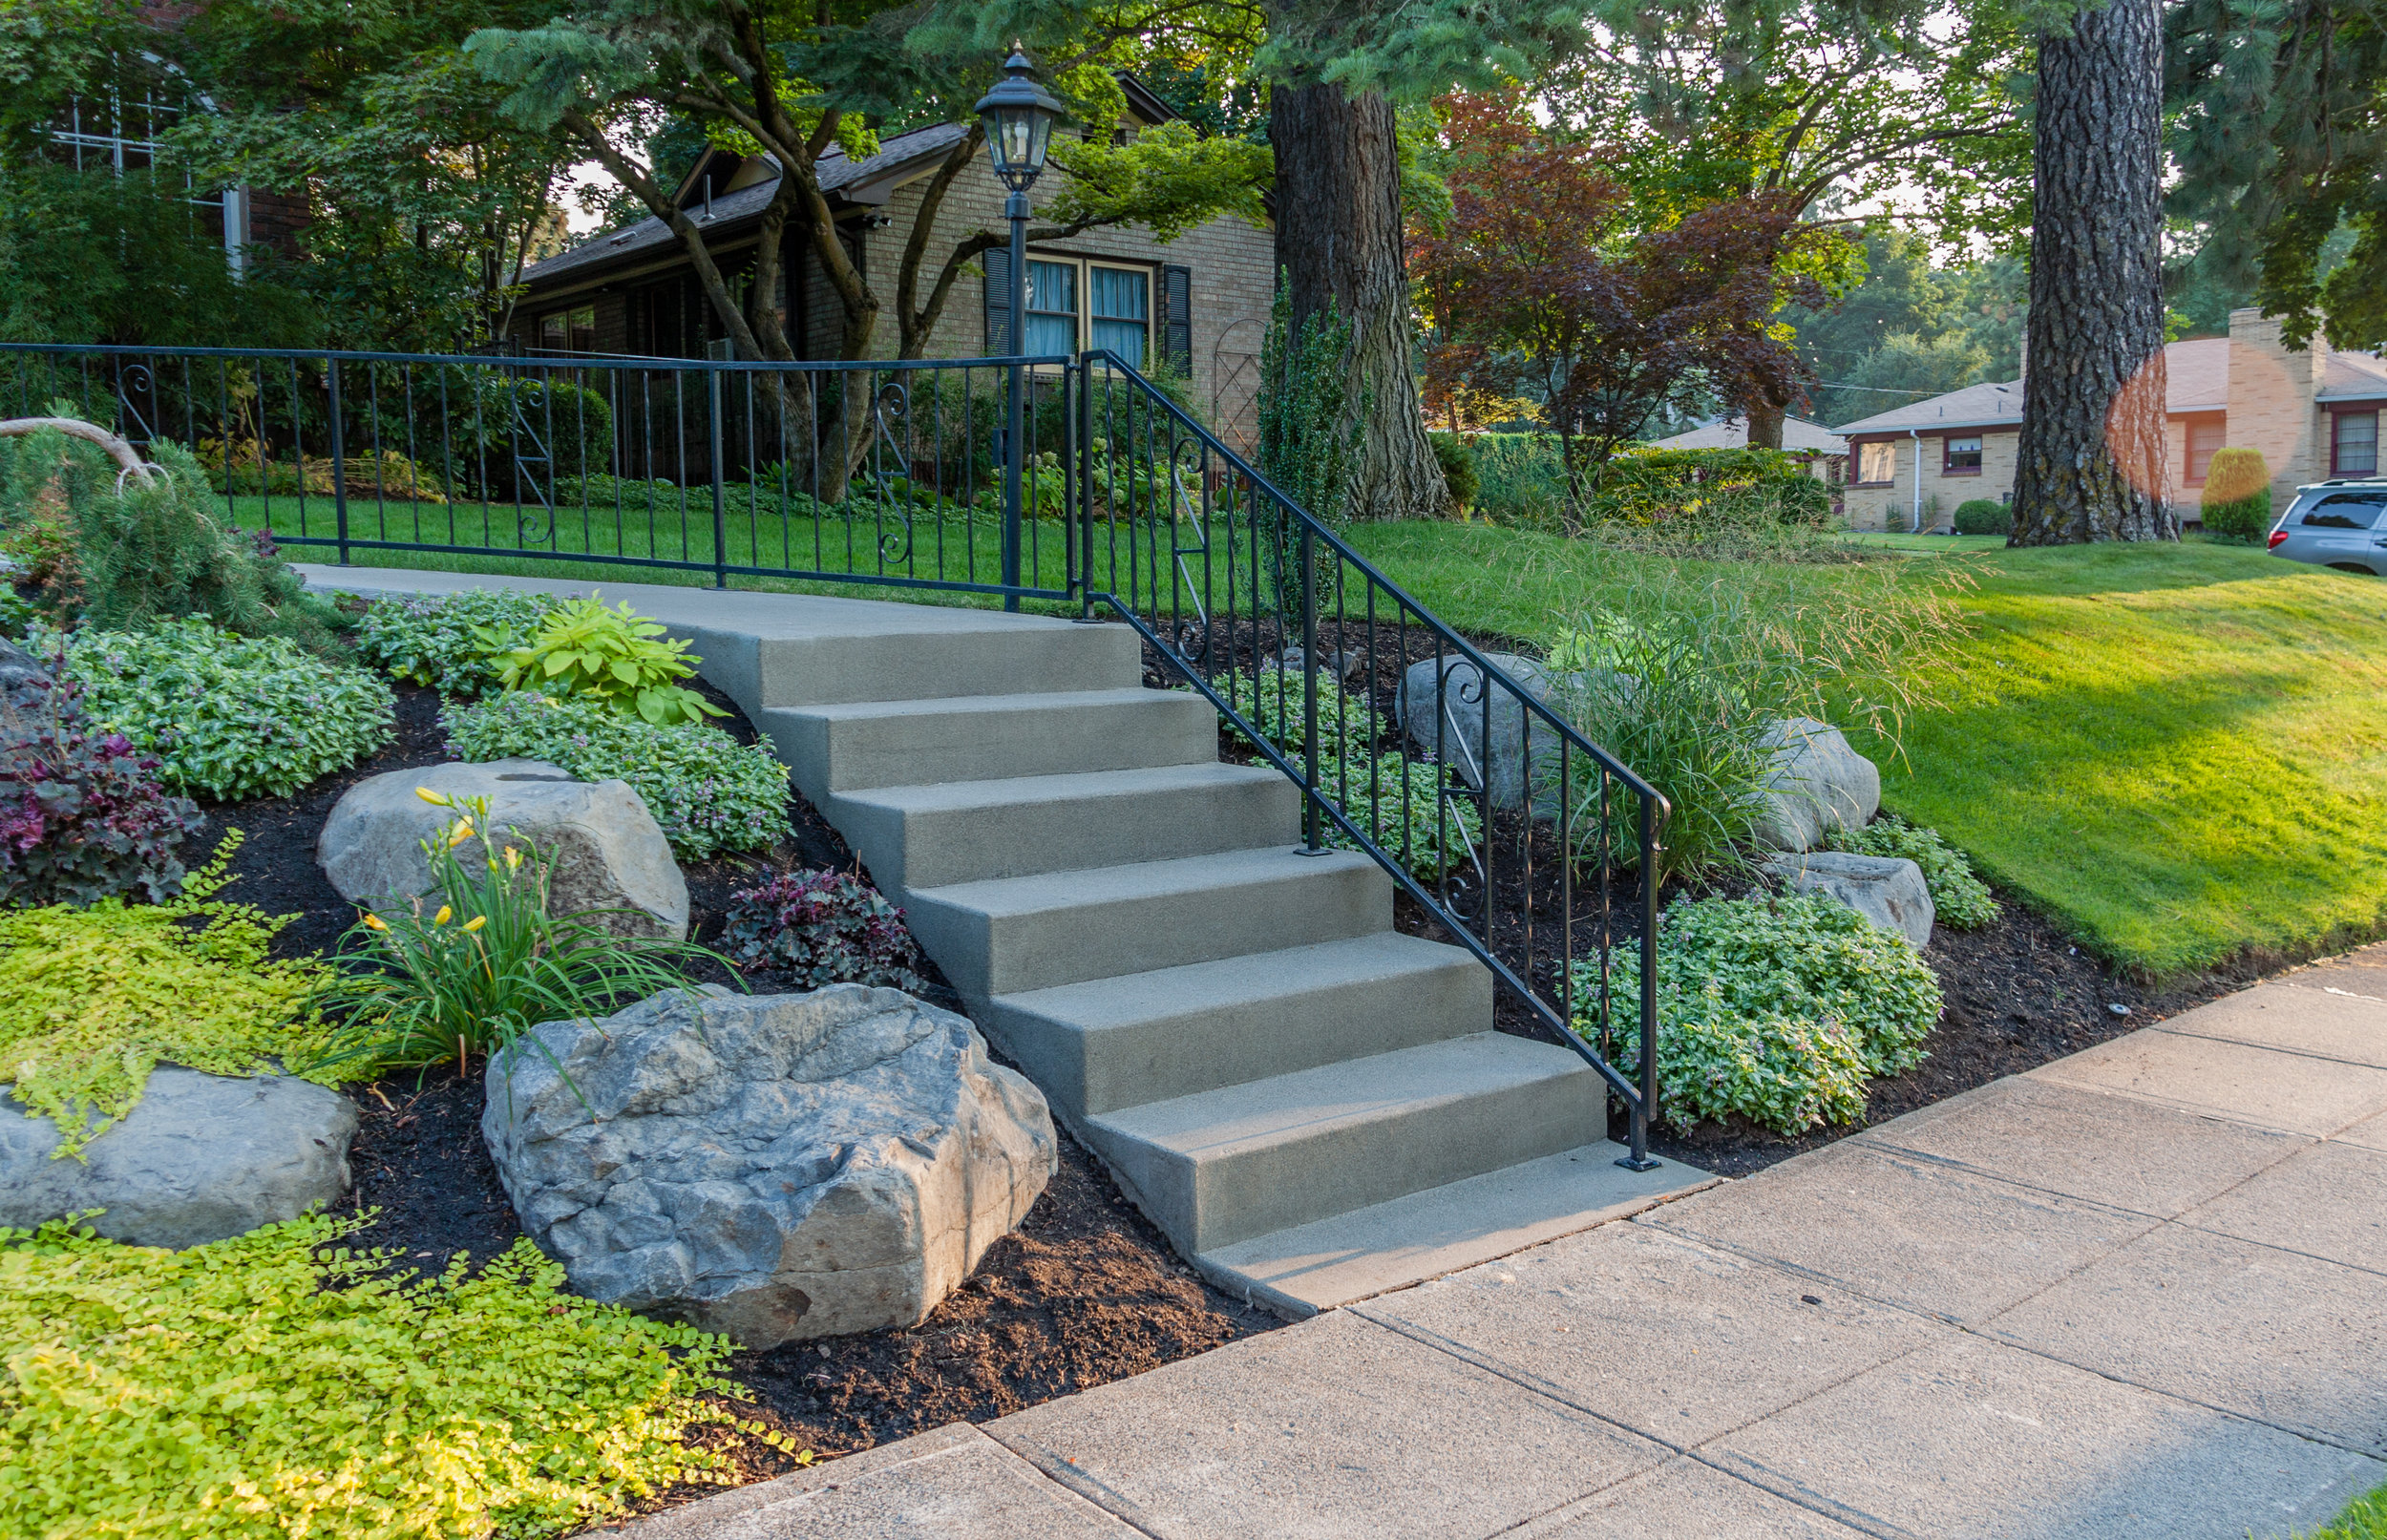 sandwashed concrete steps and boulder outcroppings